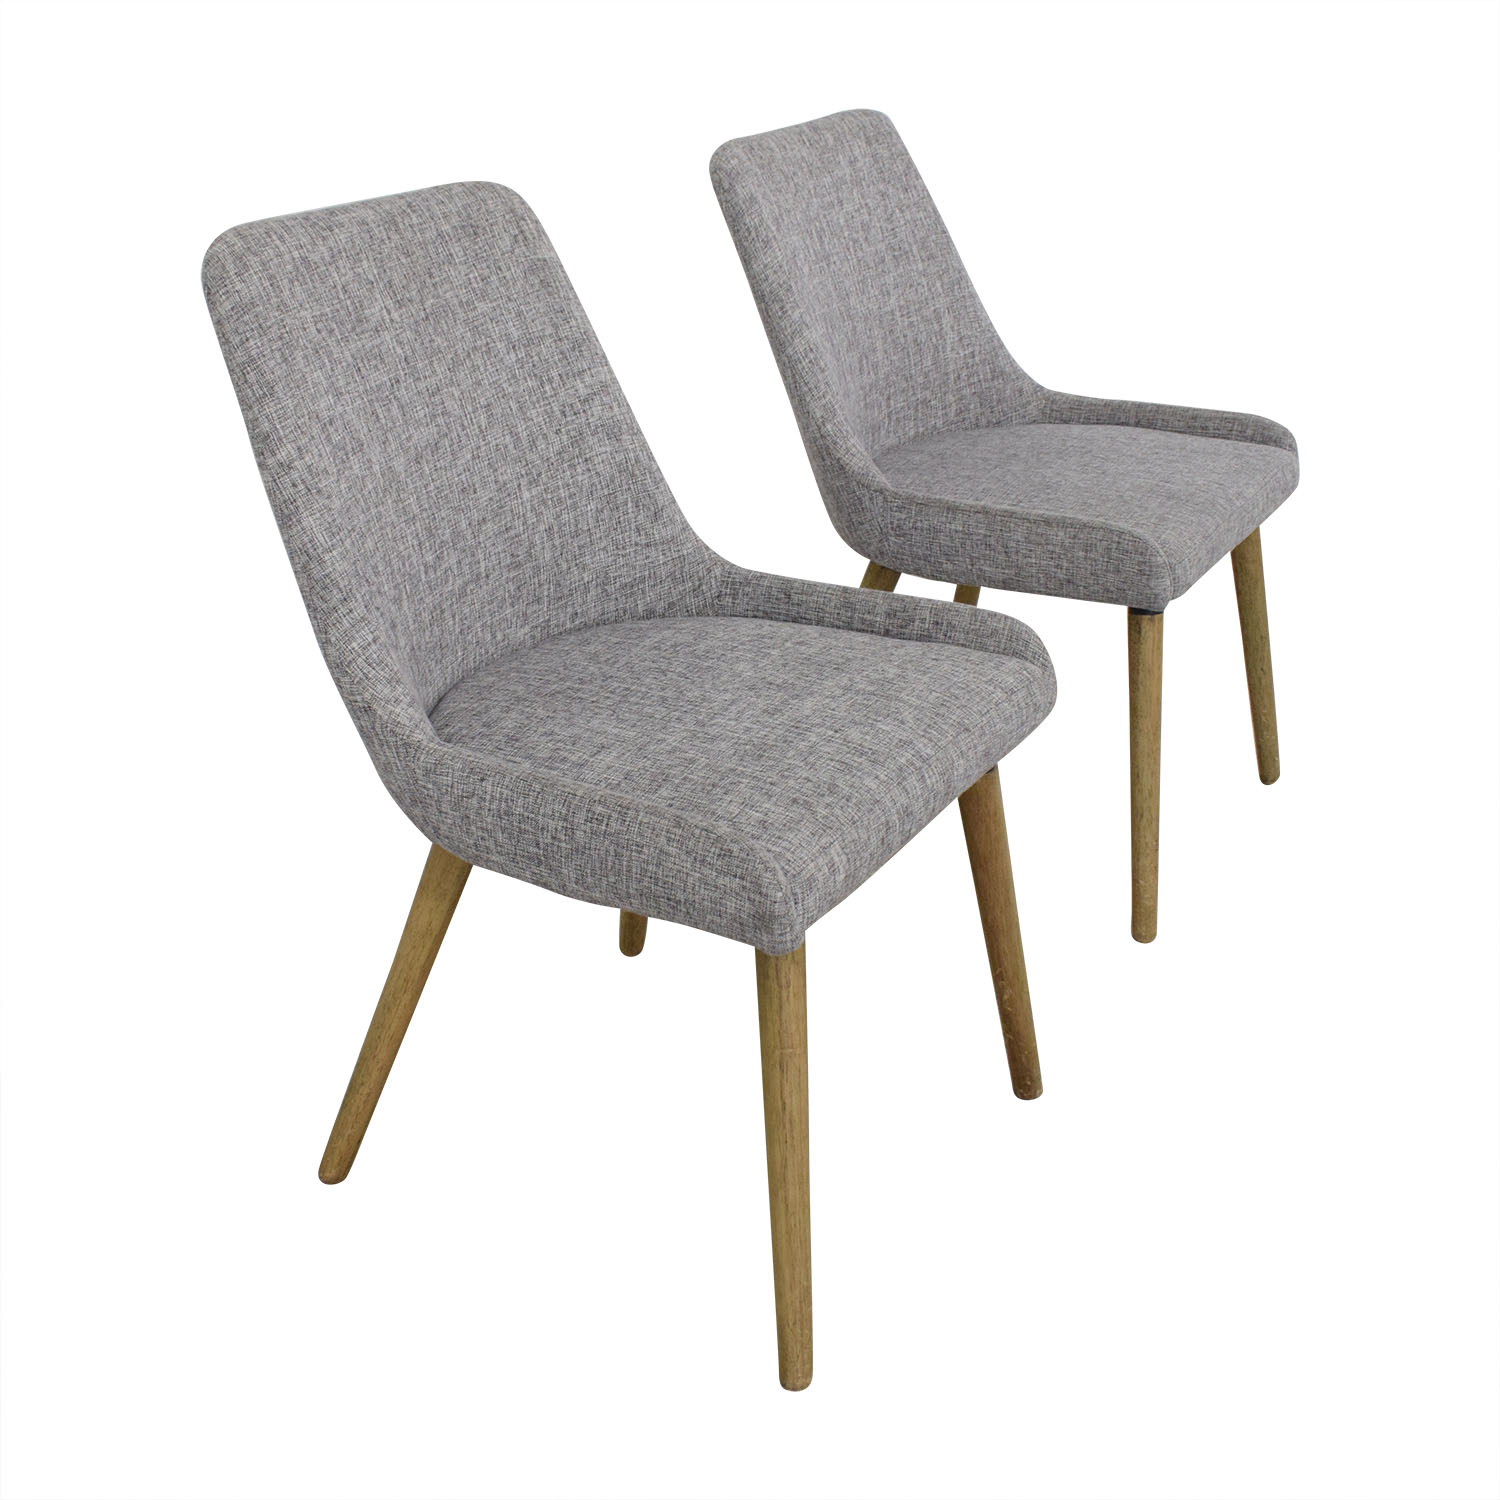 West Elm West Elm Mid-Century Upholstered Dining Chairs Chairs